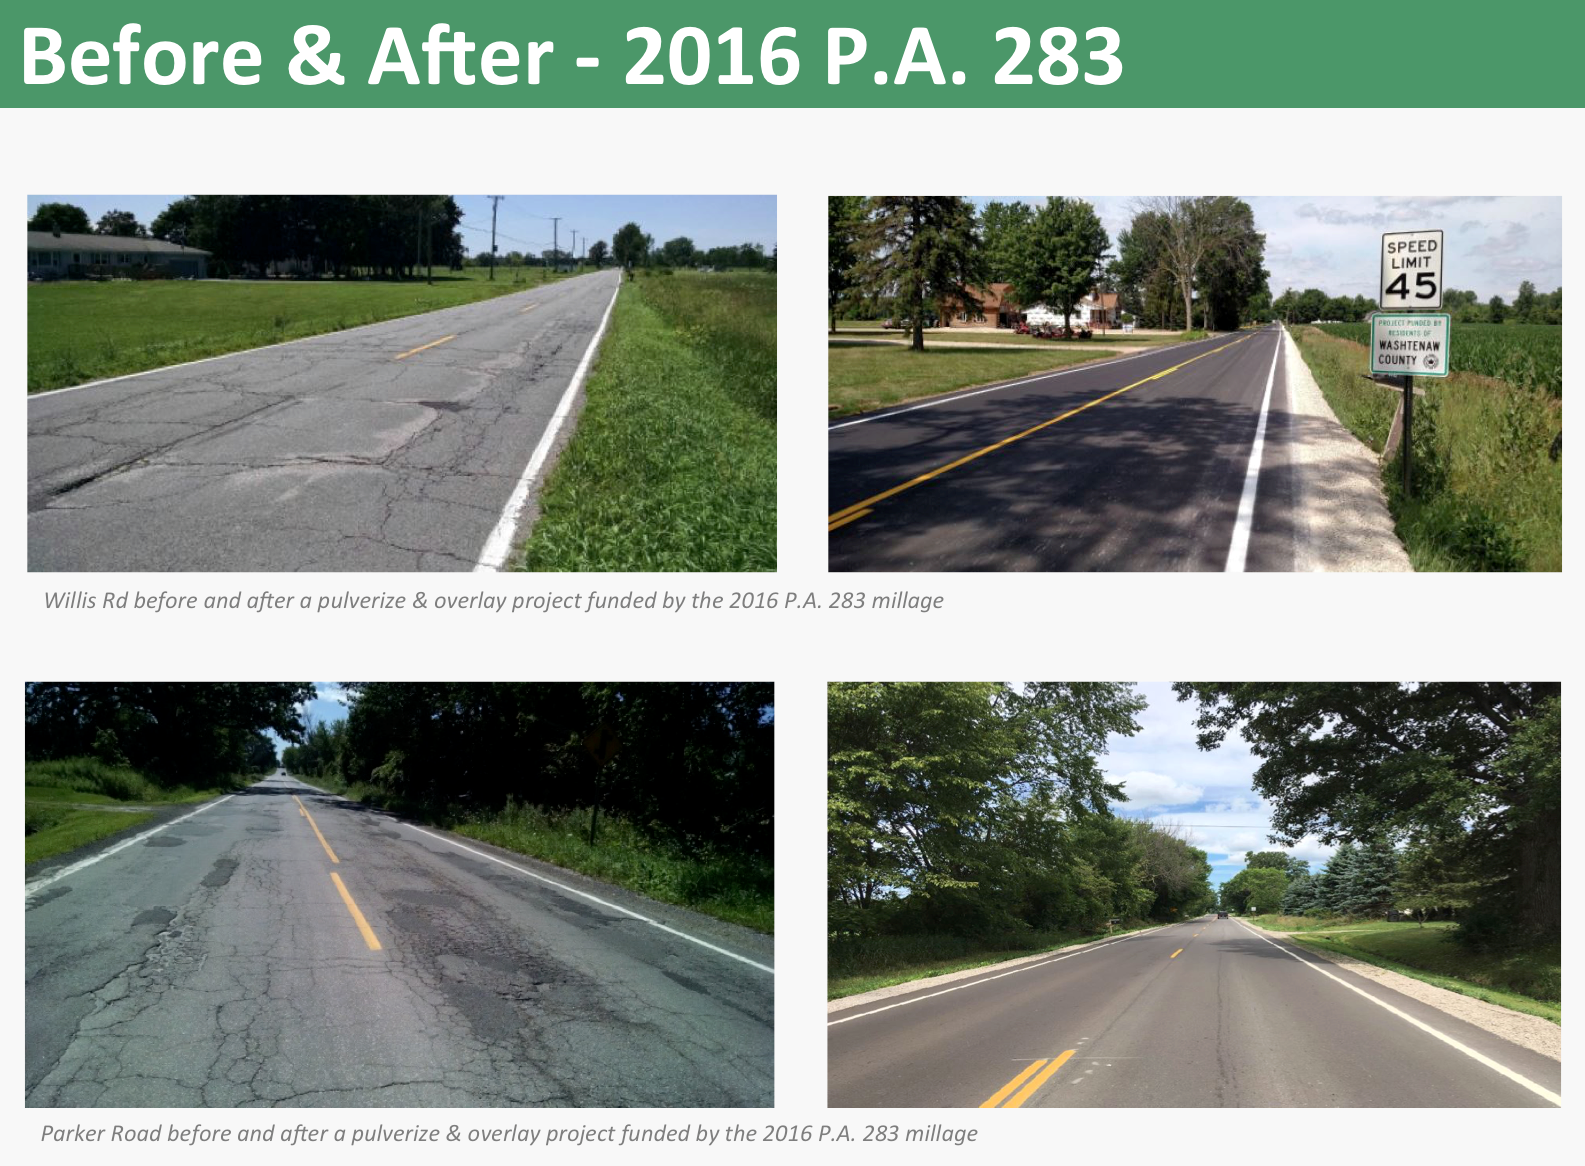 Before and after pictures of projects funded by the 2016 PA 283 millage.